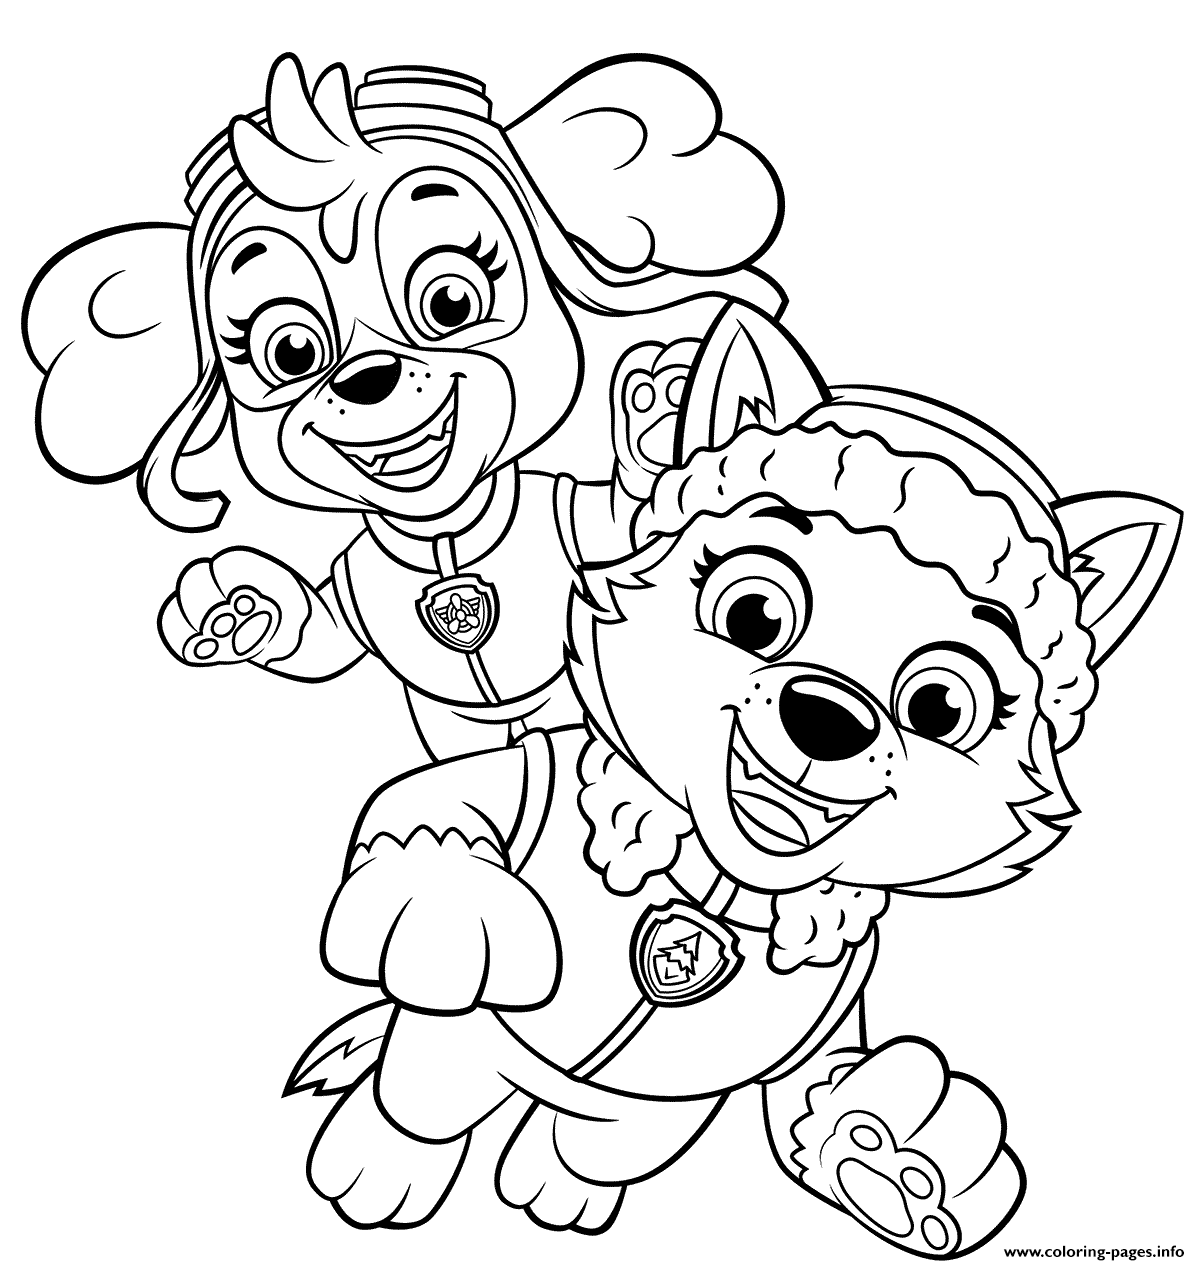 Print Skye and Everest coloring pages in 14  Paw patrol